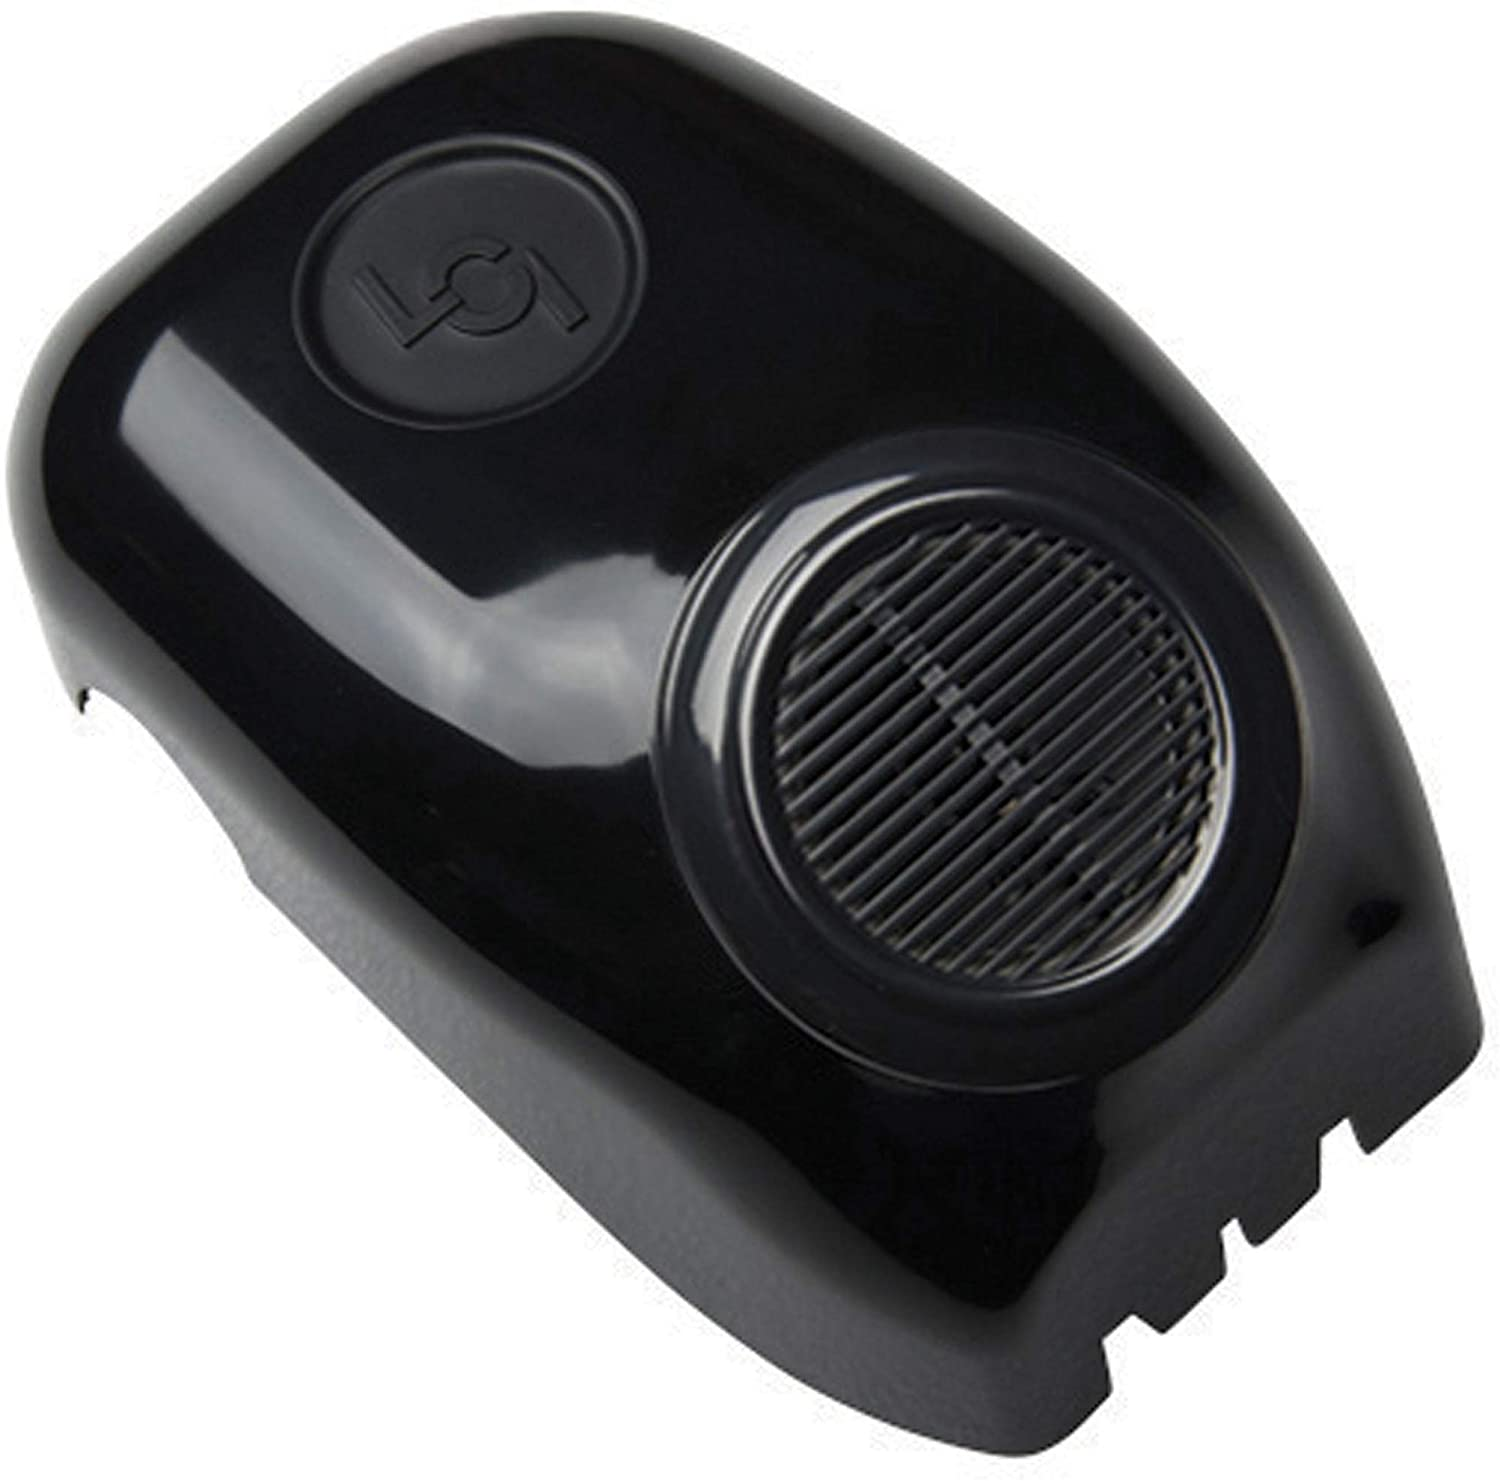 Lippert Components 354189 Solera Black Power Awning Speaker Idler Head Front Cover